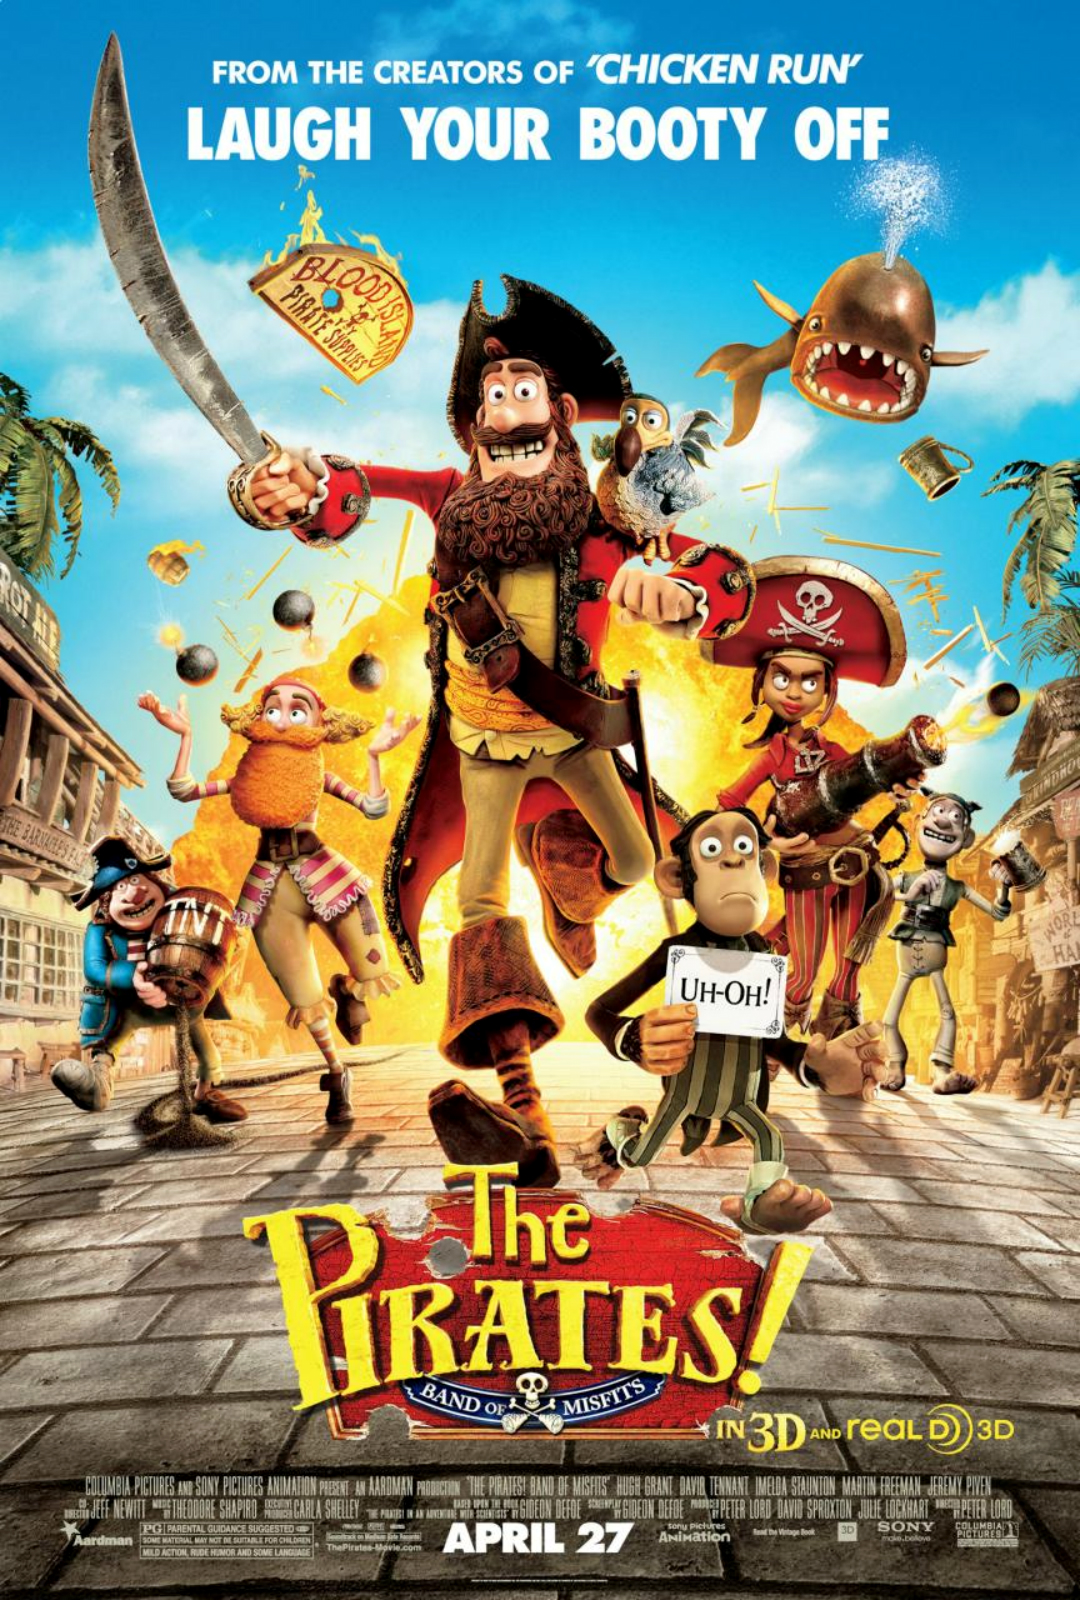 The-Pirates-Band-of-Misfits-Movie-Poster.jpg